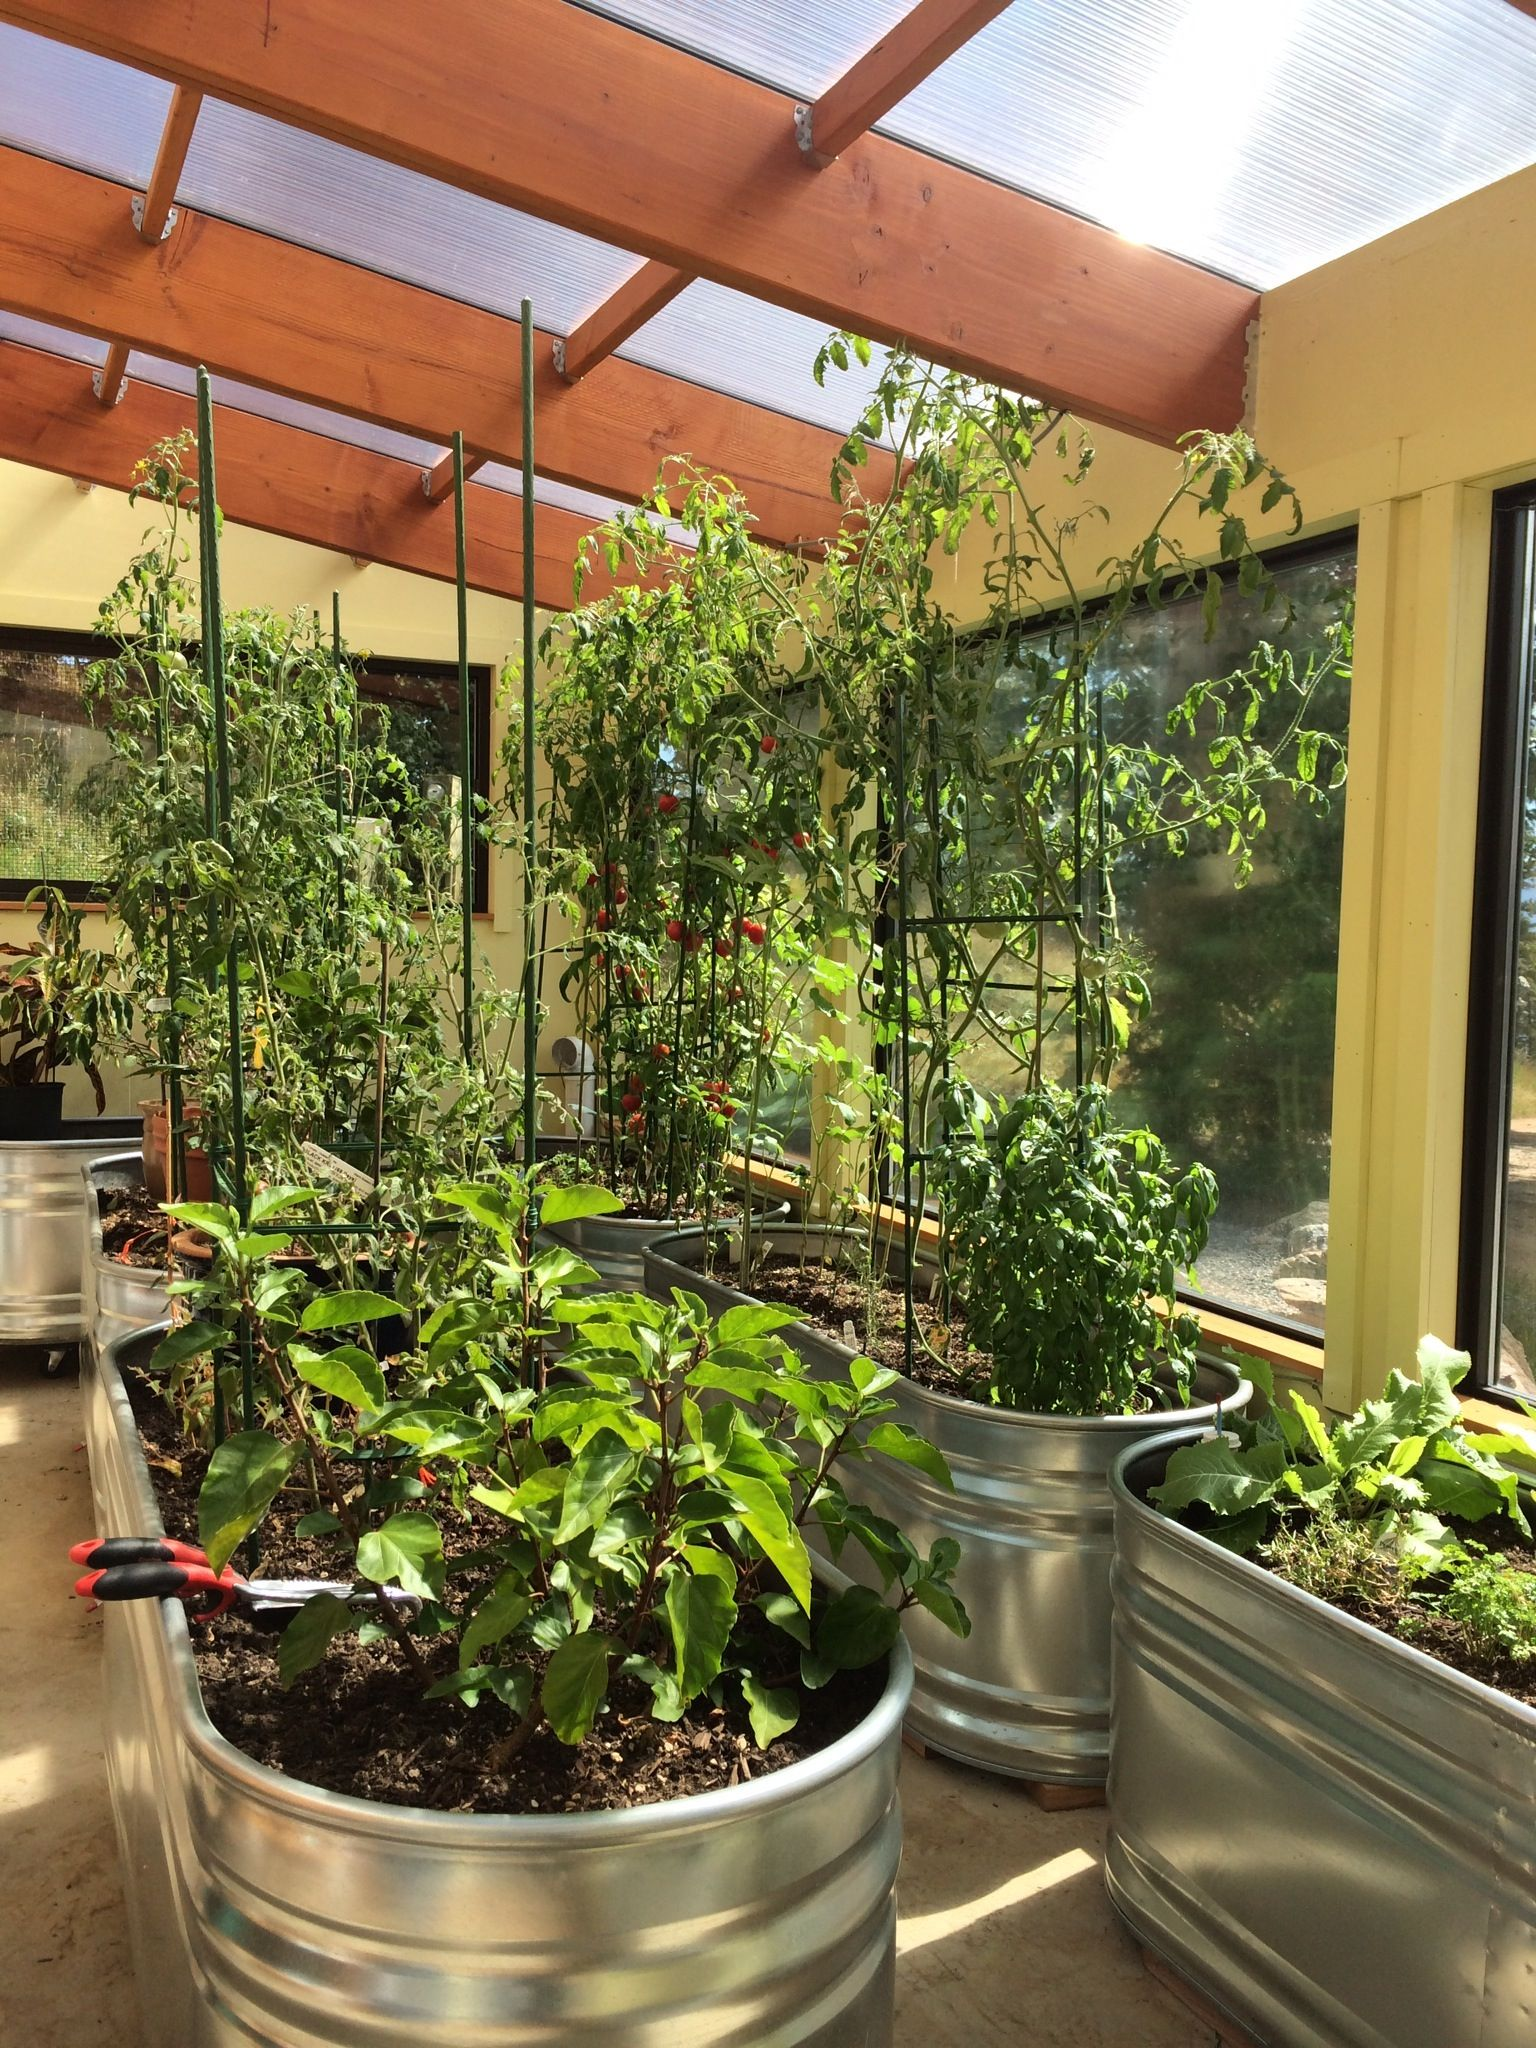 3 Ways To Heat Your Greenhouse For Free This Winter Ceres Greenhouse Greenhouse Farming Aquaponics Greenhouse Greenhouse Gardening